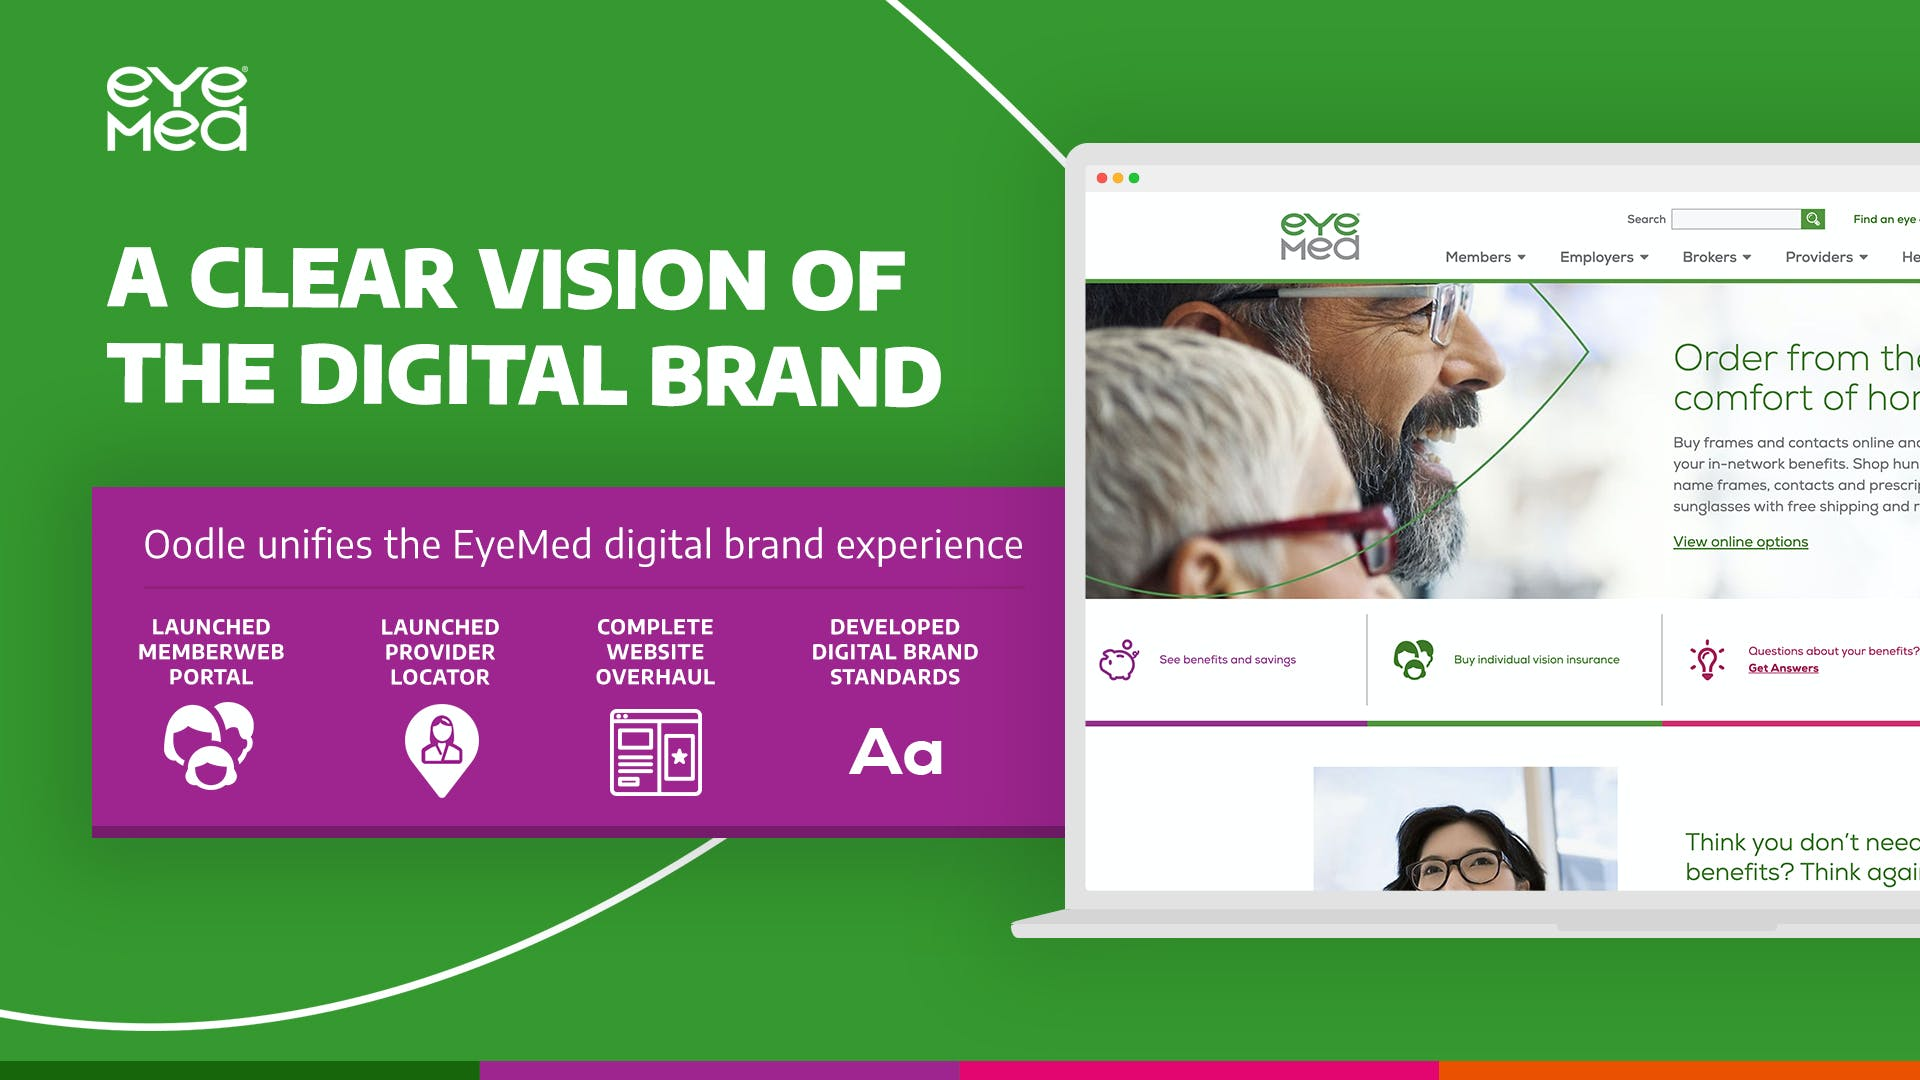 EyeMed - A clear vision of the digital brand